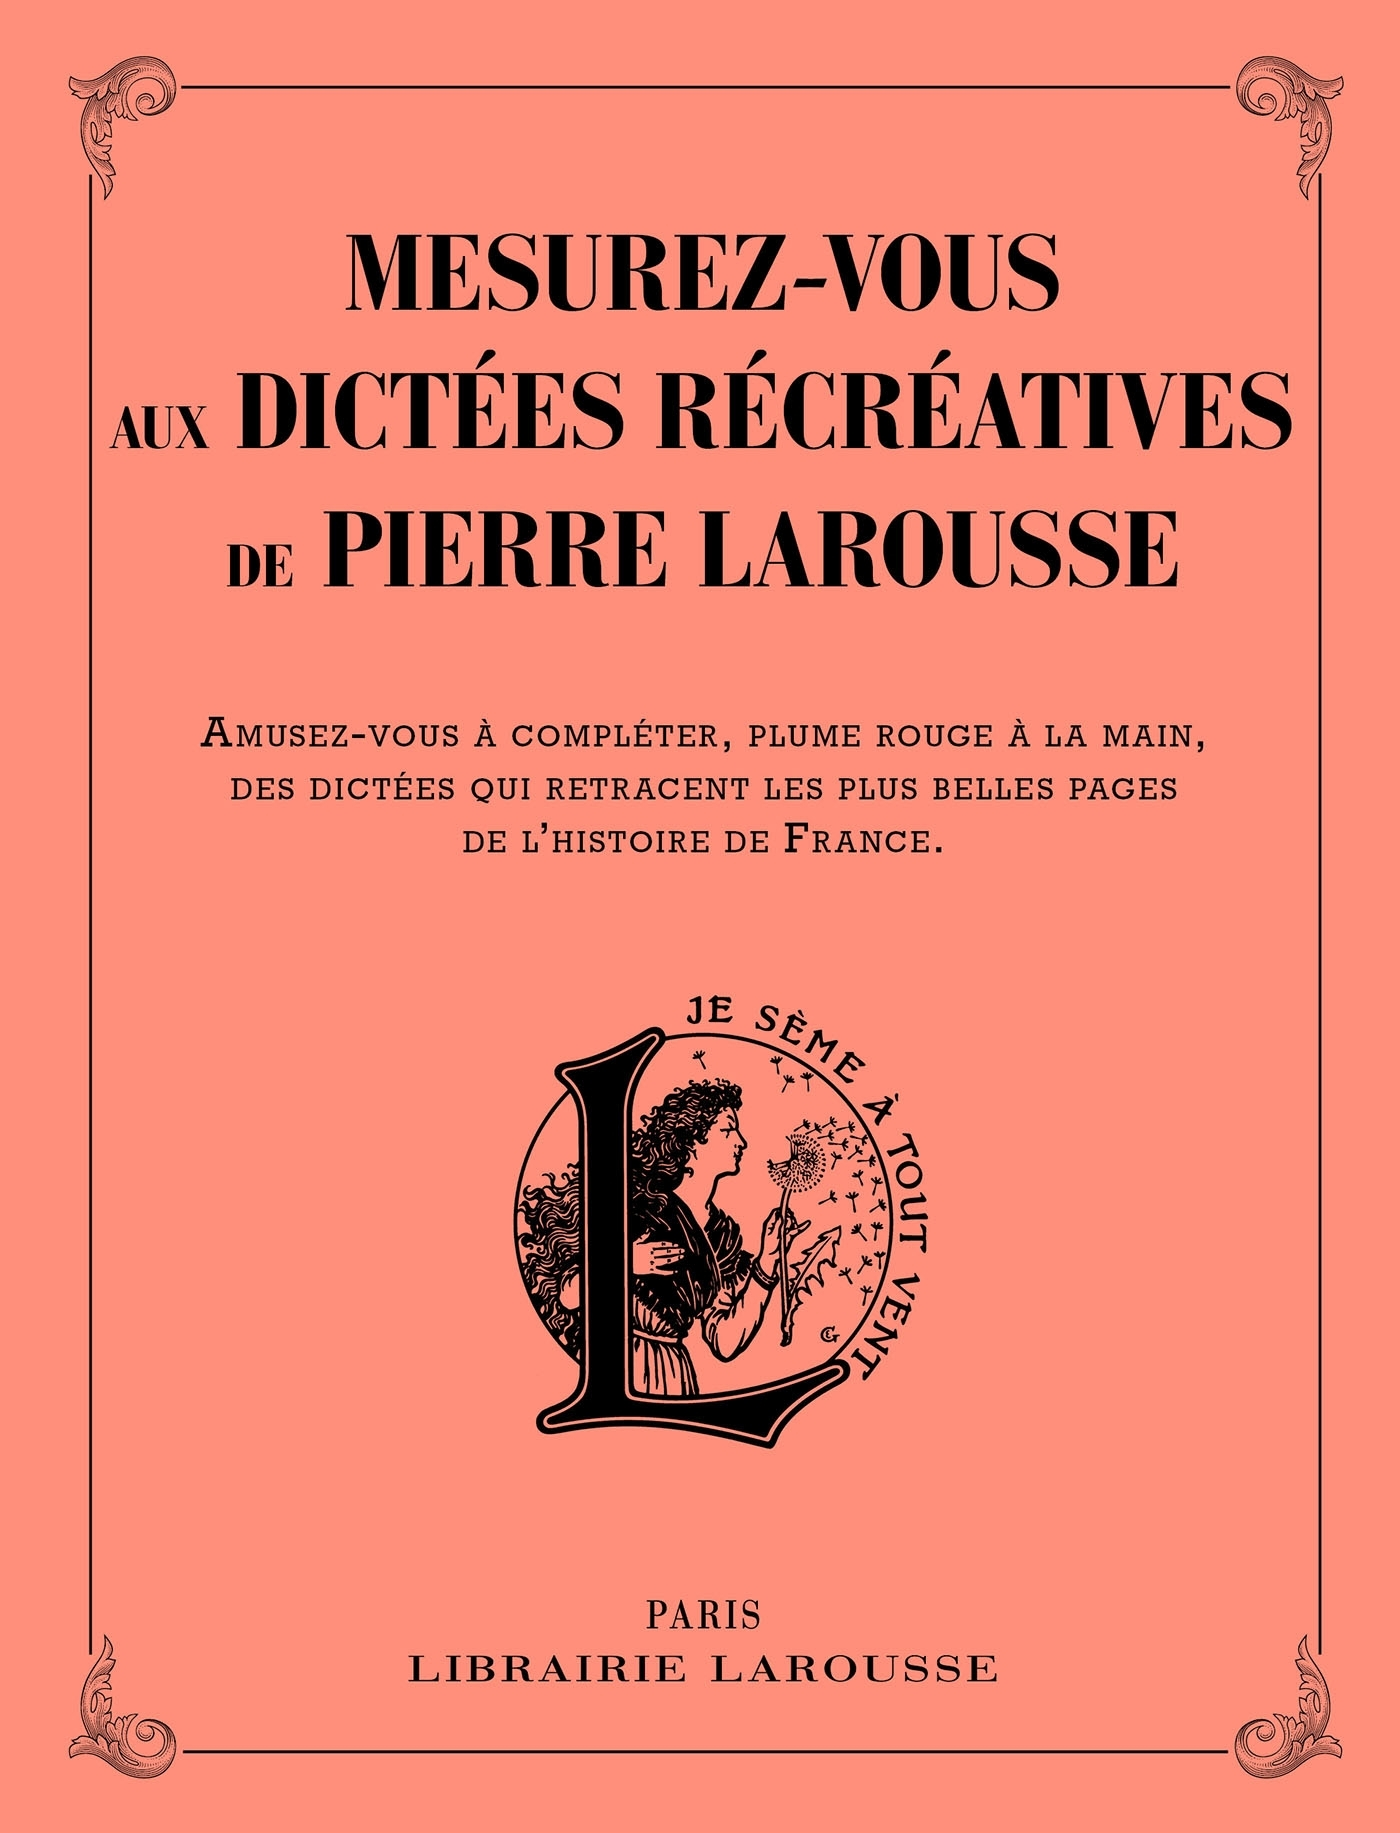 MESUREZ VOUS AUX DICTEES RECREATIVES